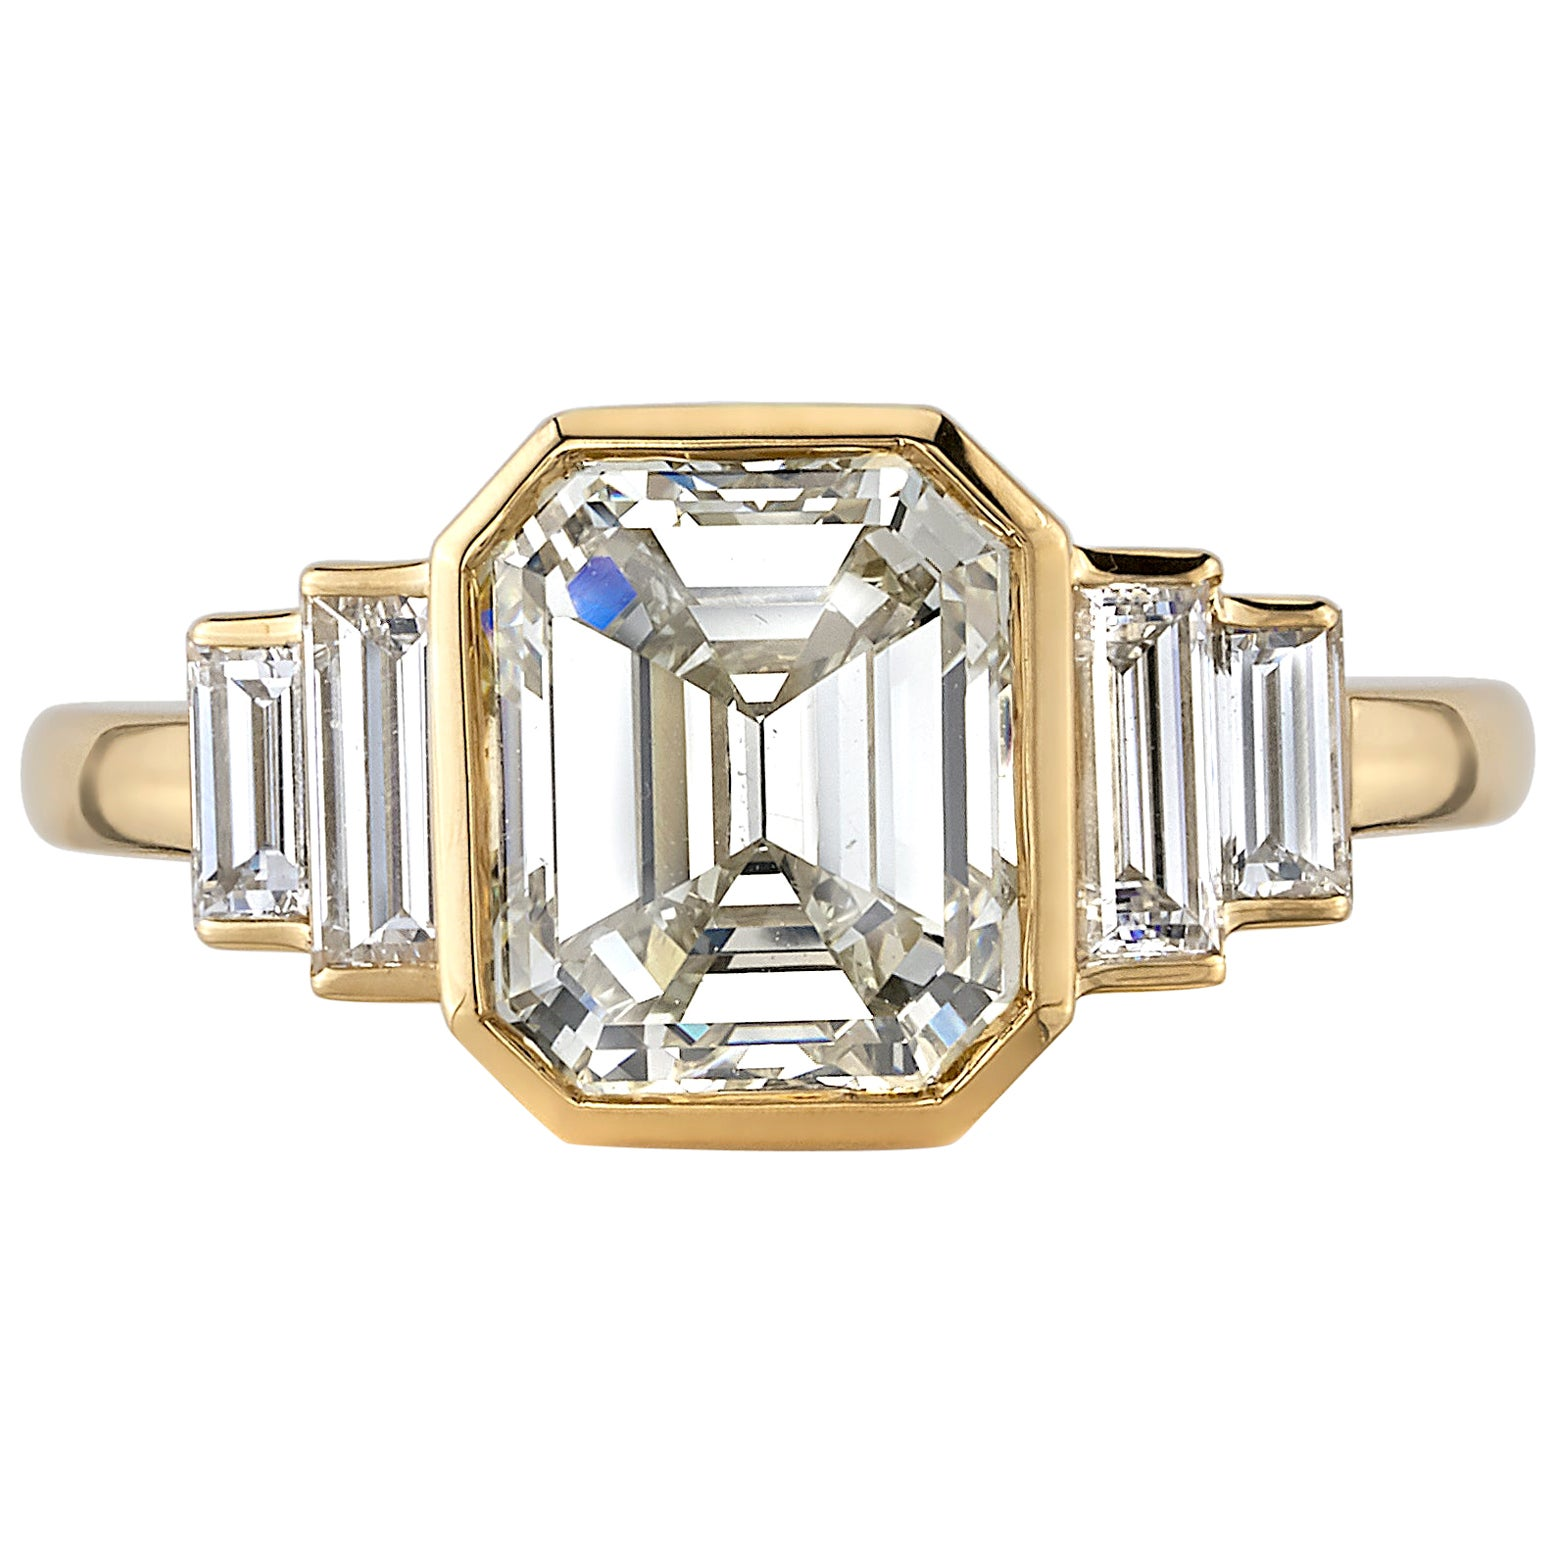 3.01 Carat Emerald Cut Diamond Set in a Handcrafted 18 Karat Yellow Gold Ring